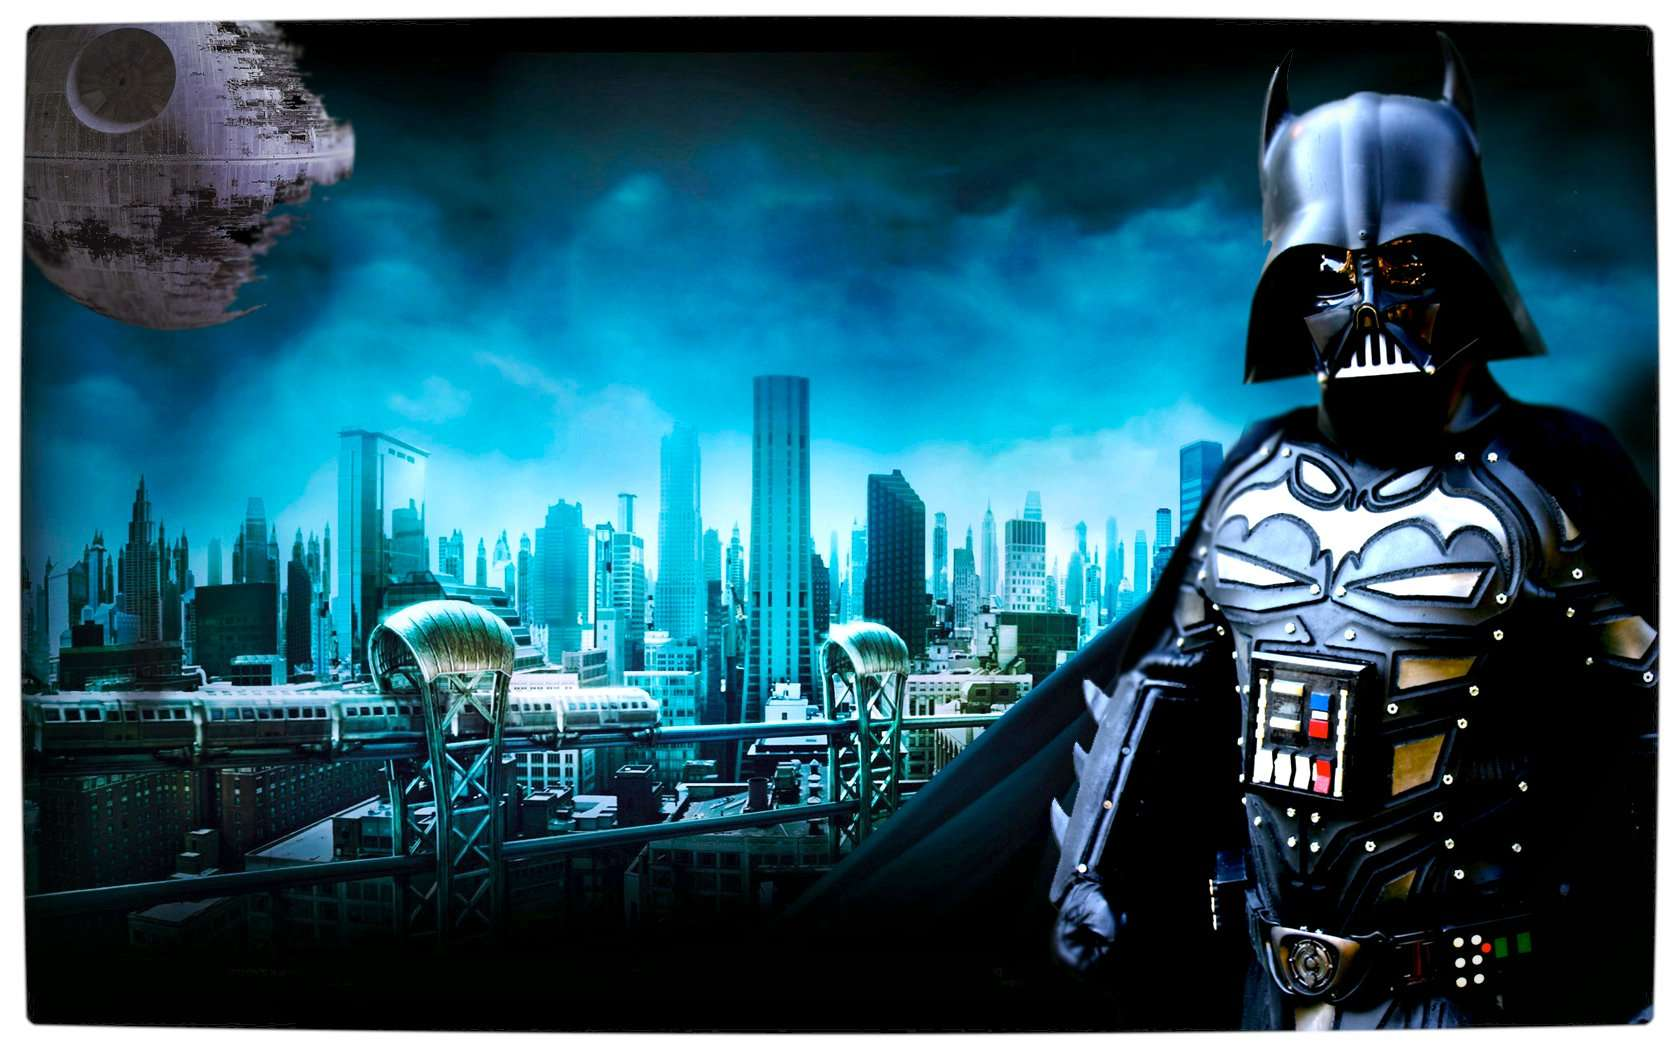 Vamers - Artistry - Bat Vader is The Dark Knight of the Sith - Batman and Darth Vader Mash-Up - Art by Malmey Studios